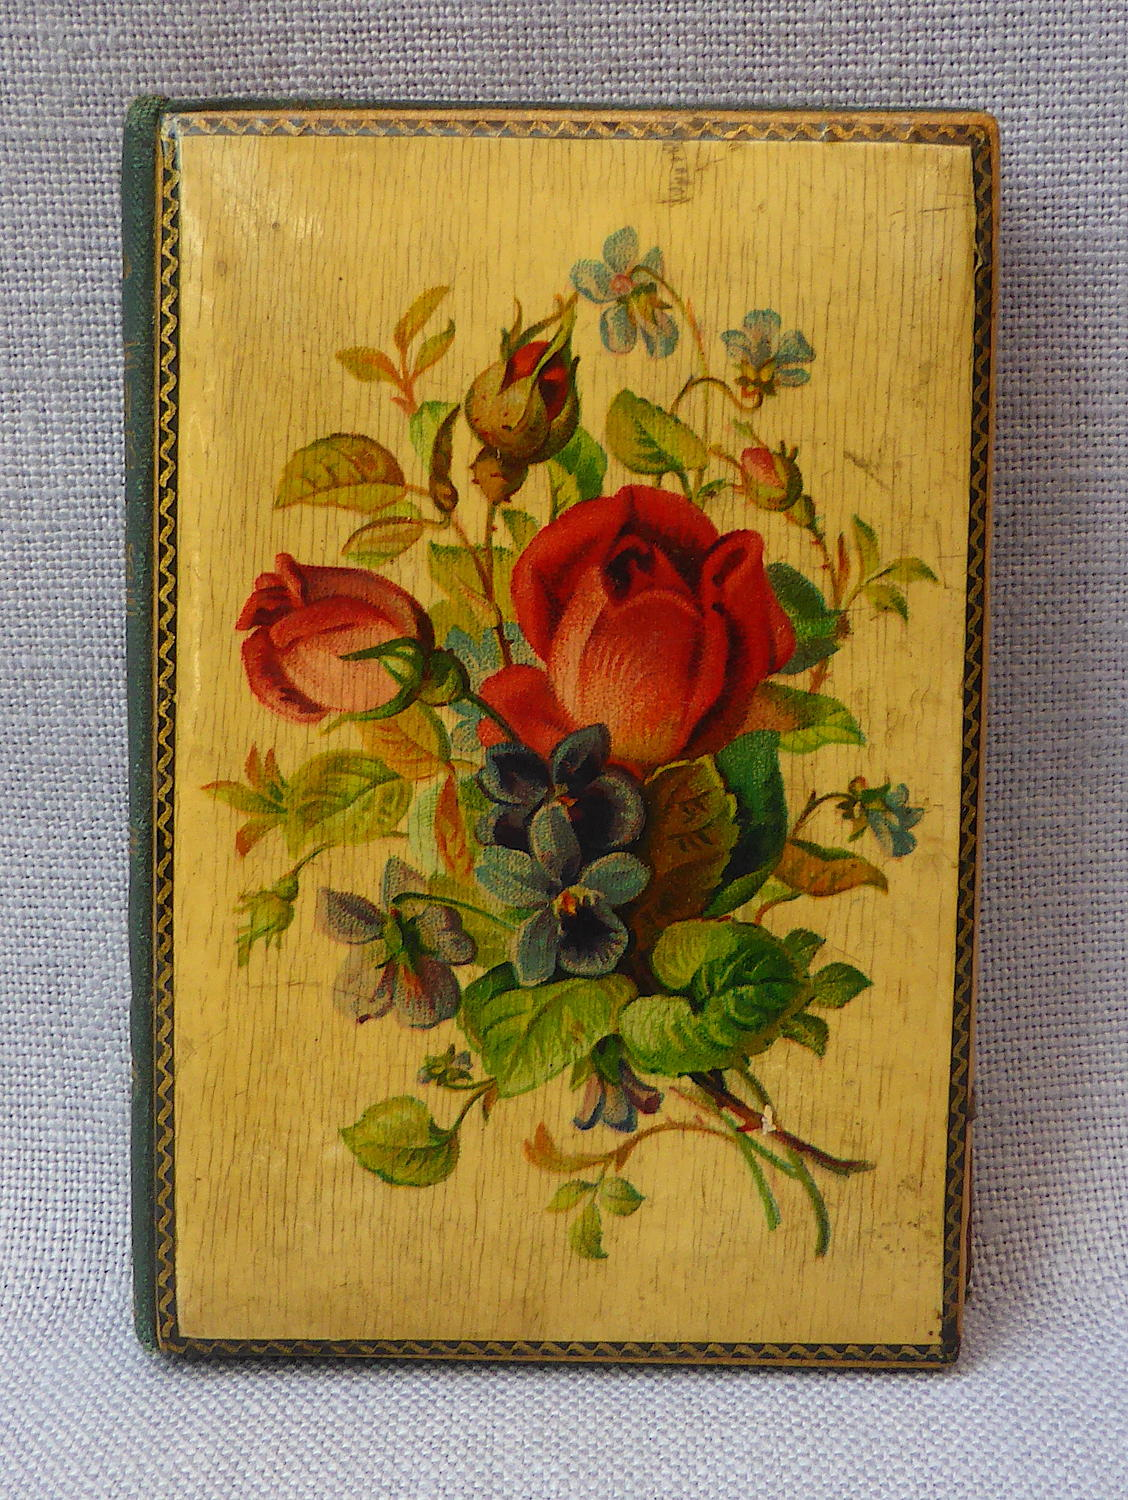 Late 19th century Mauchline ware book by Alice Crowther